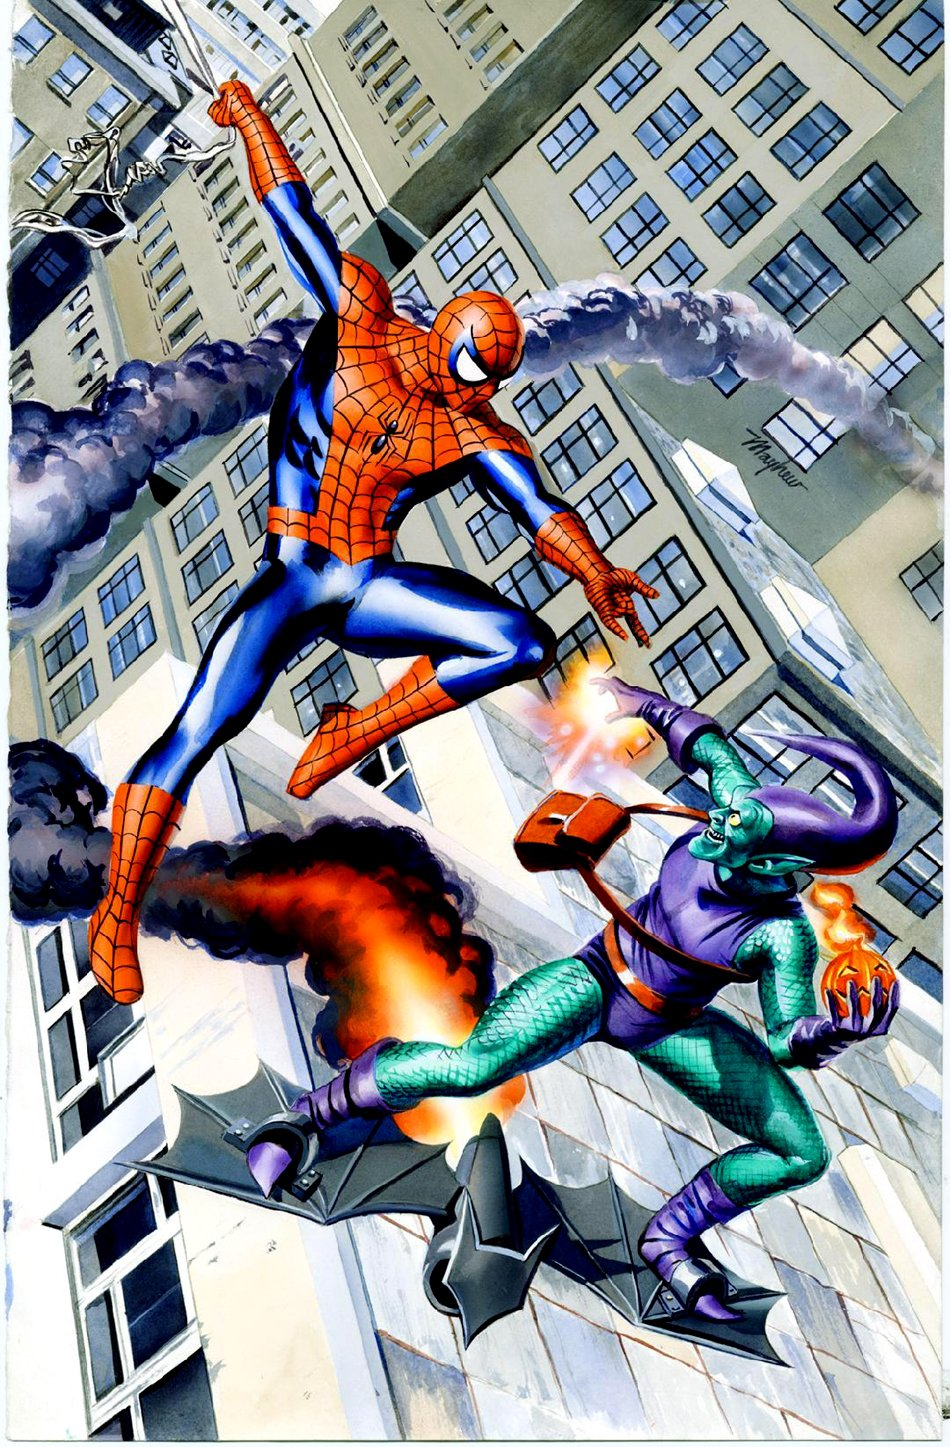 Spider-Man Vs Green Goblin Painted Watercolor Pinup (Used For Conventions)